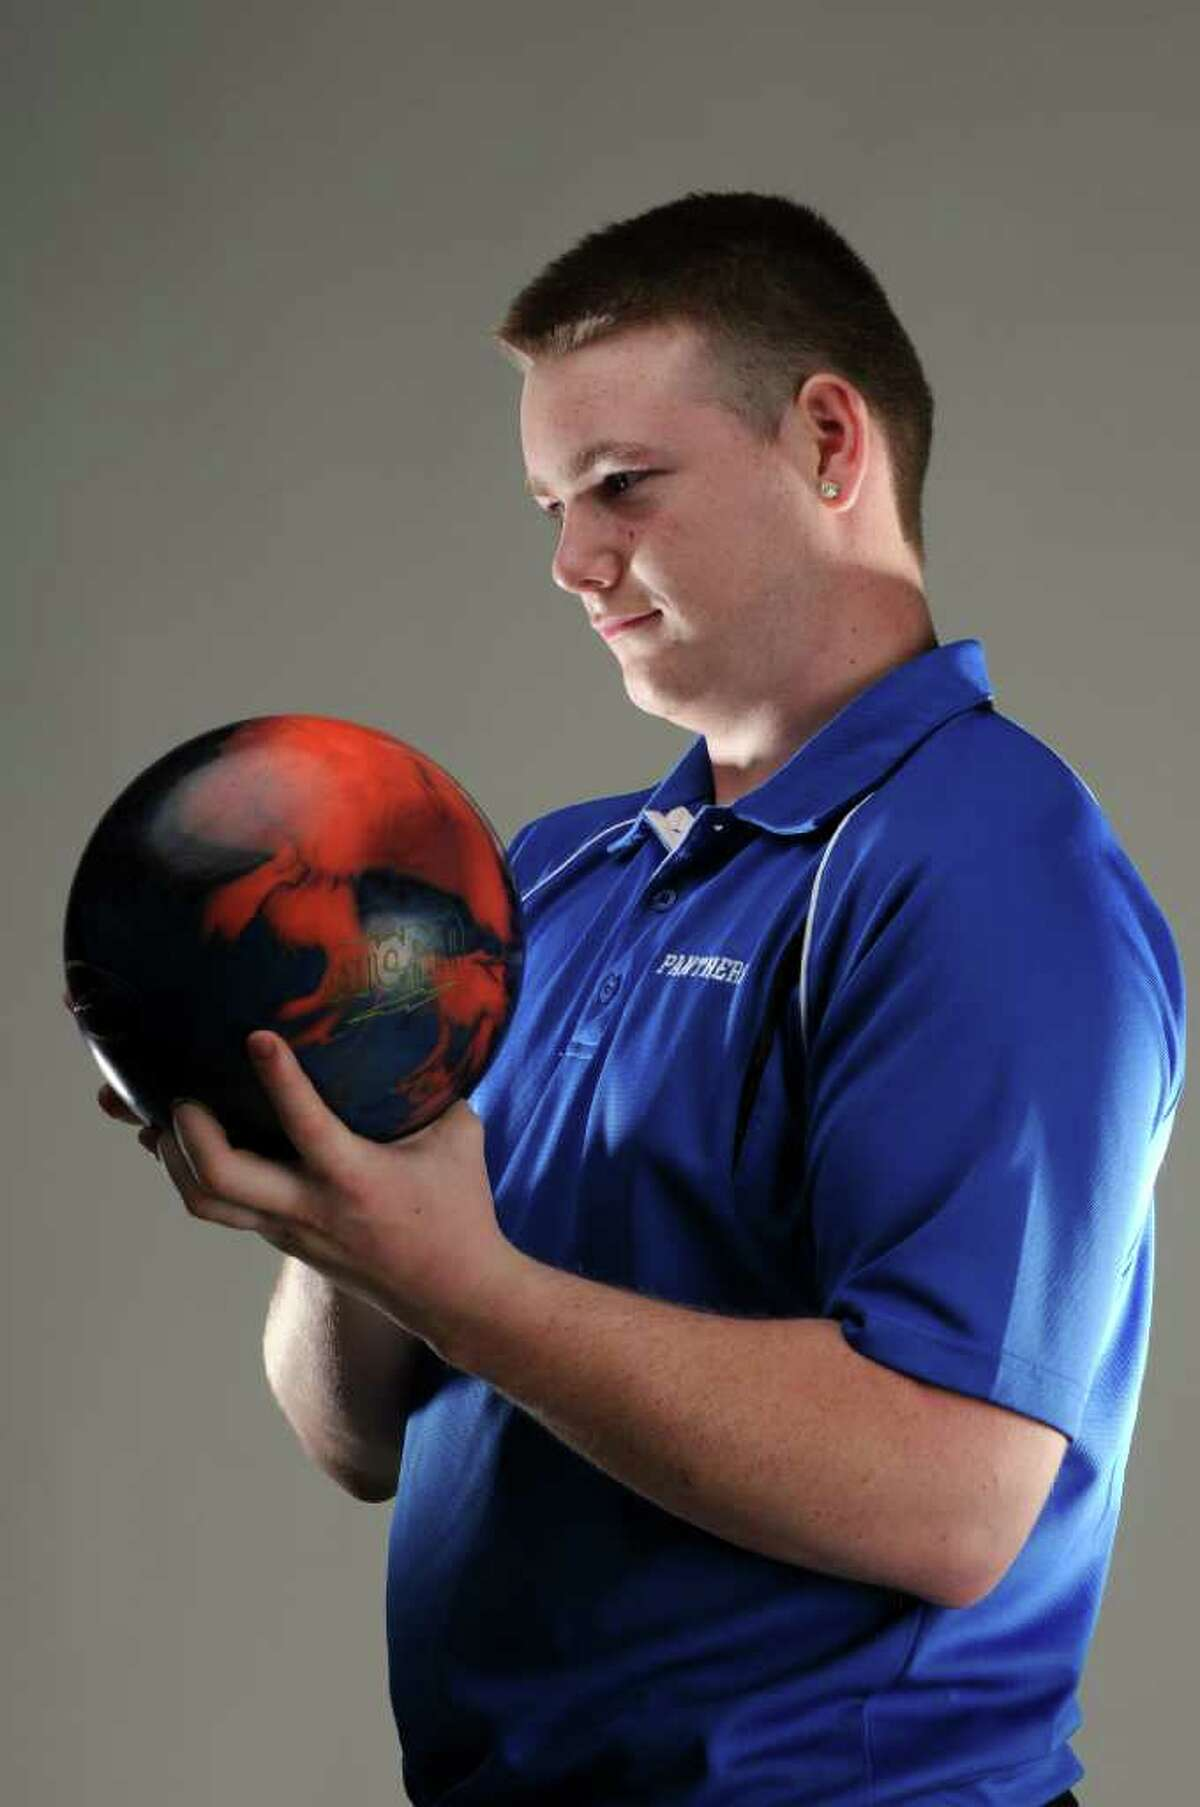 Hoosick Falls bowler Joe Wolfrum in the Times Union photography studio on Monday evening March 19, 2012 in Colonie, N.Y. (Philip Kamrass / Times Union )